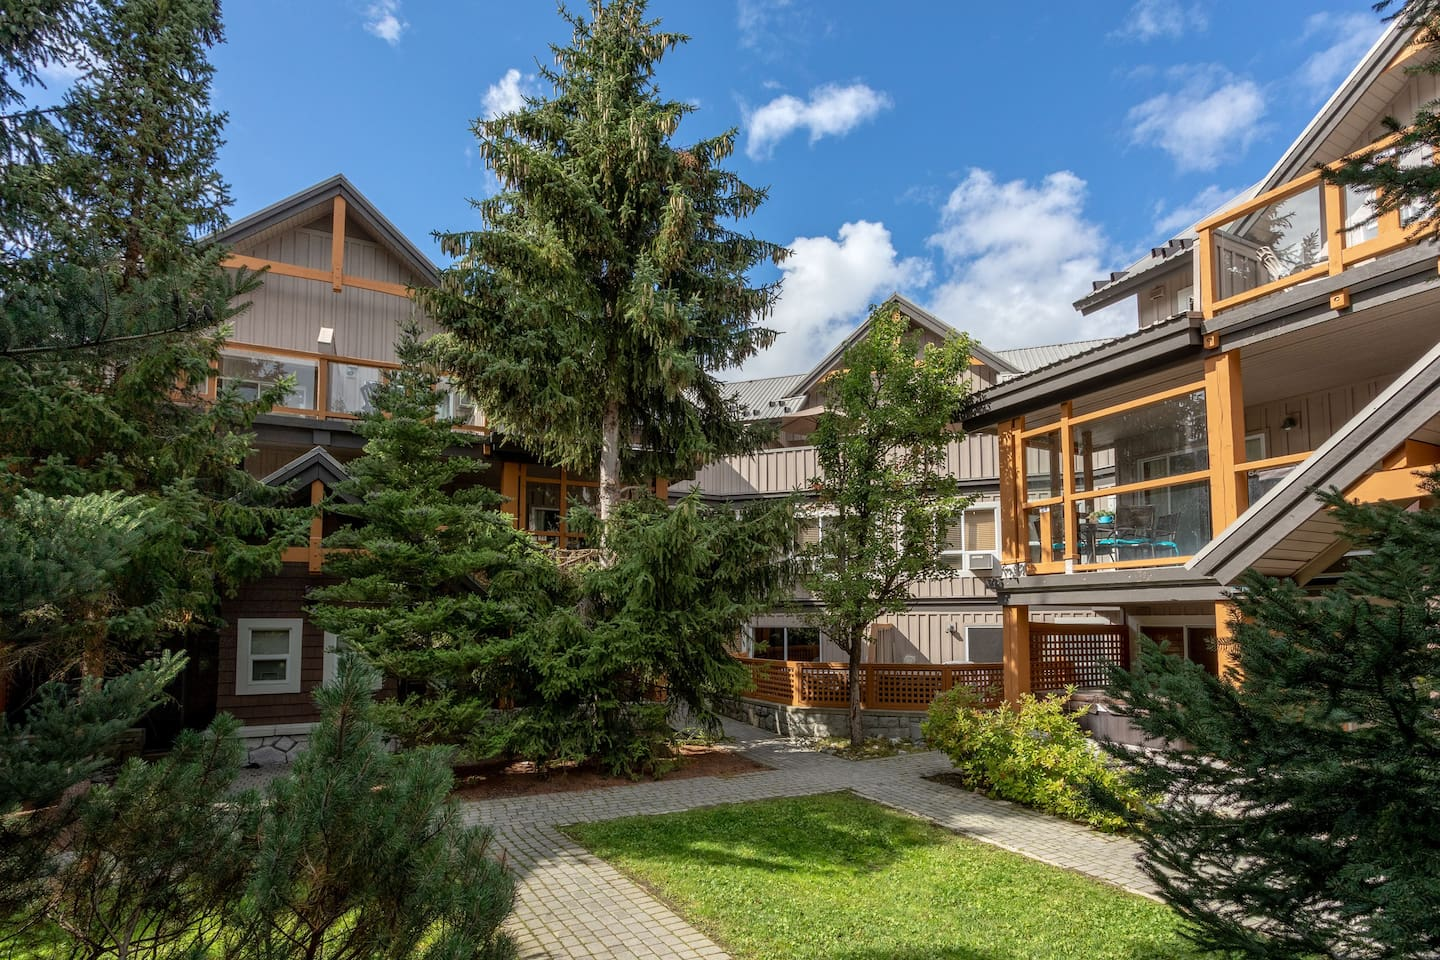 Looking for a large group and want to stay IN WHISTLER VILLAGE?? Our Property is located in Glaciers Reach, a local favourite and situated in Whistler Village. These are two separate townhouses connected with an internal door in the living room.